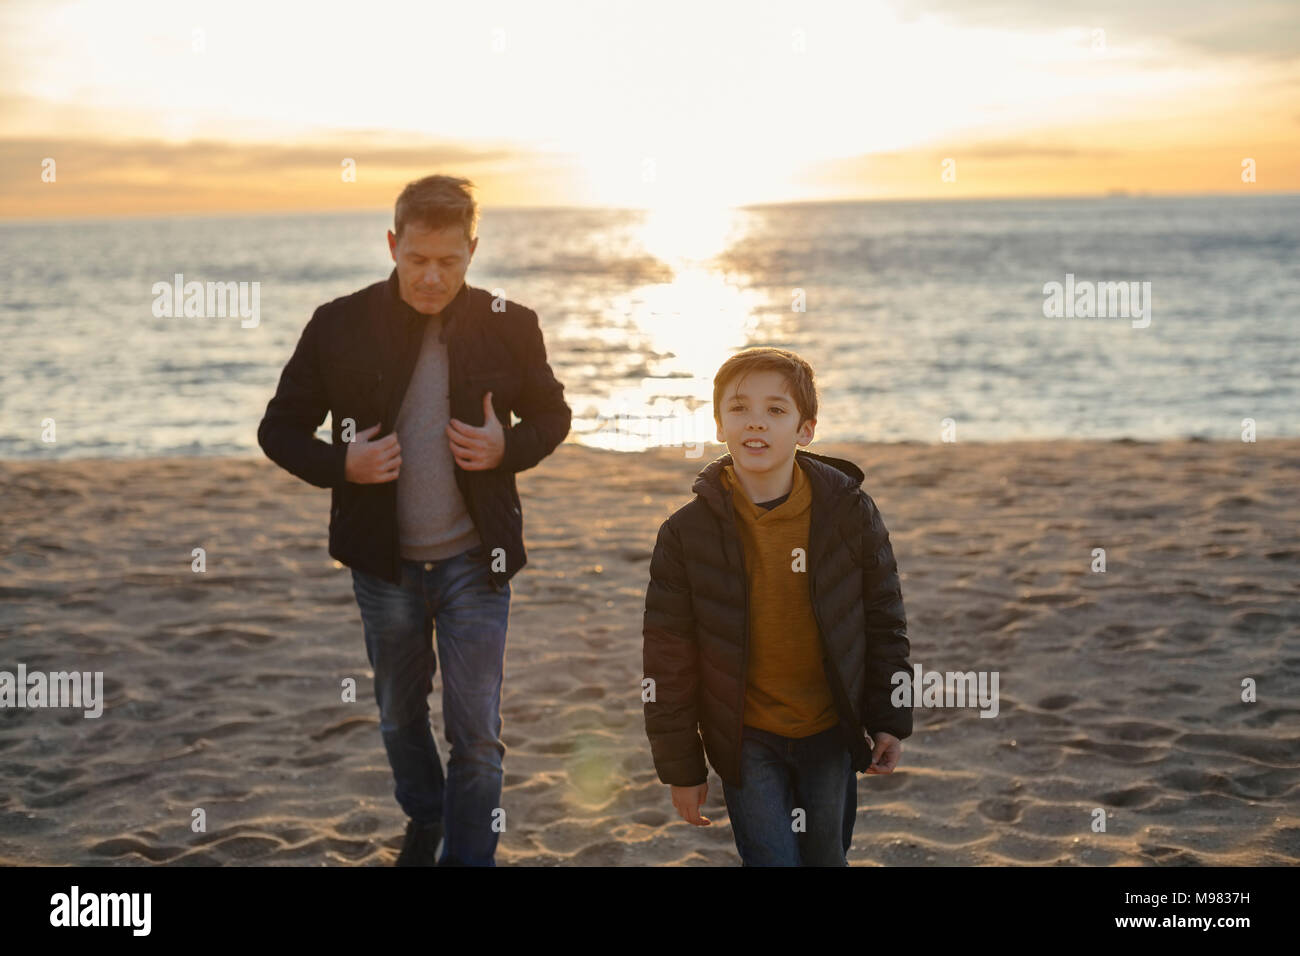 Father and son walking on the beach at sunset - Stock Image